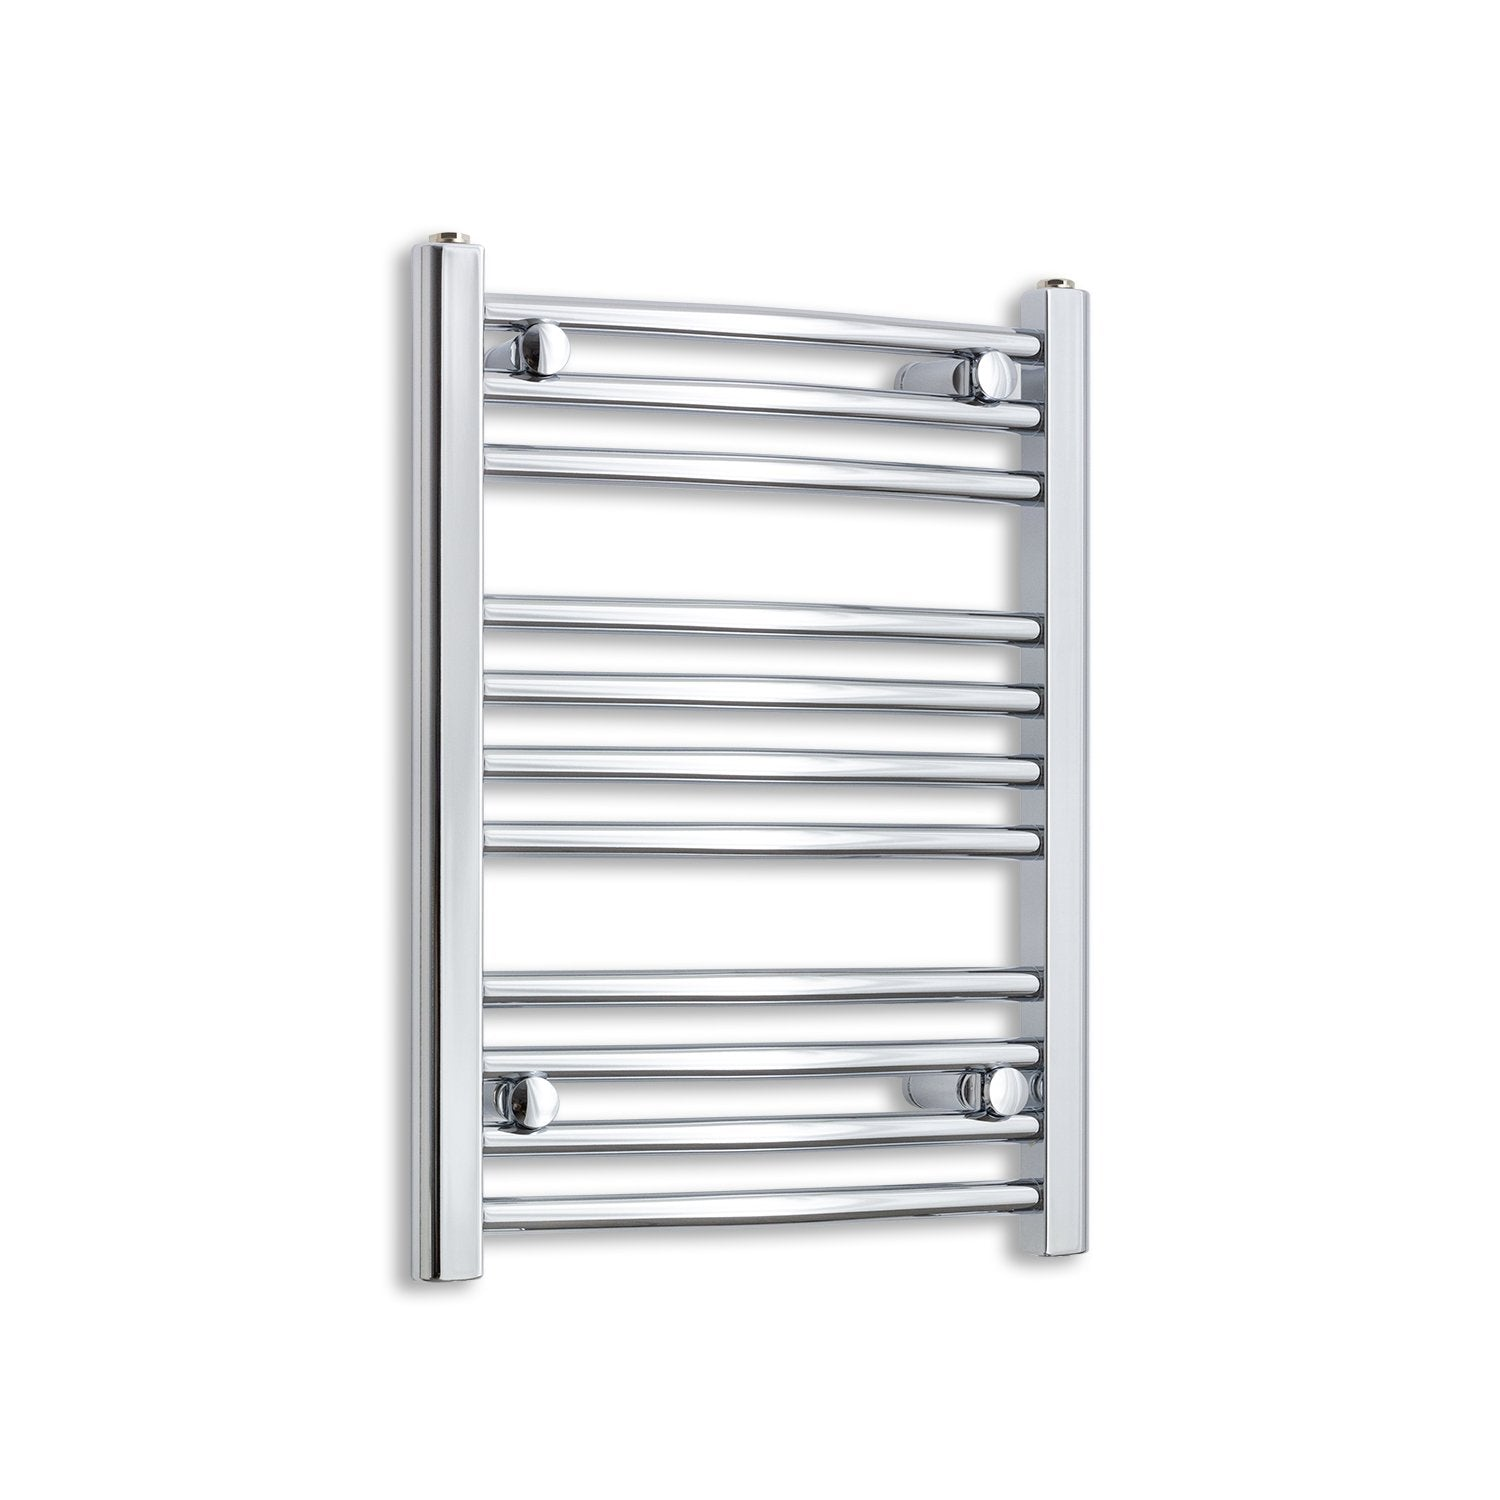 450mm Wide 600mm High Flat Chrome Heated Towel Rail Radiator HTR,Towel Rail Only